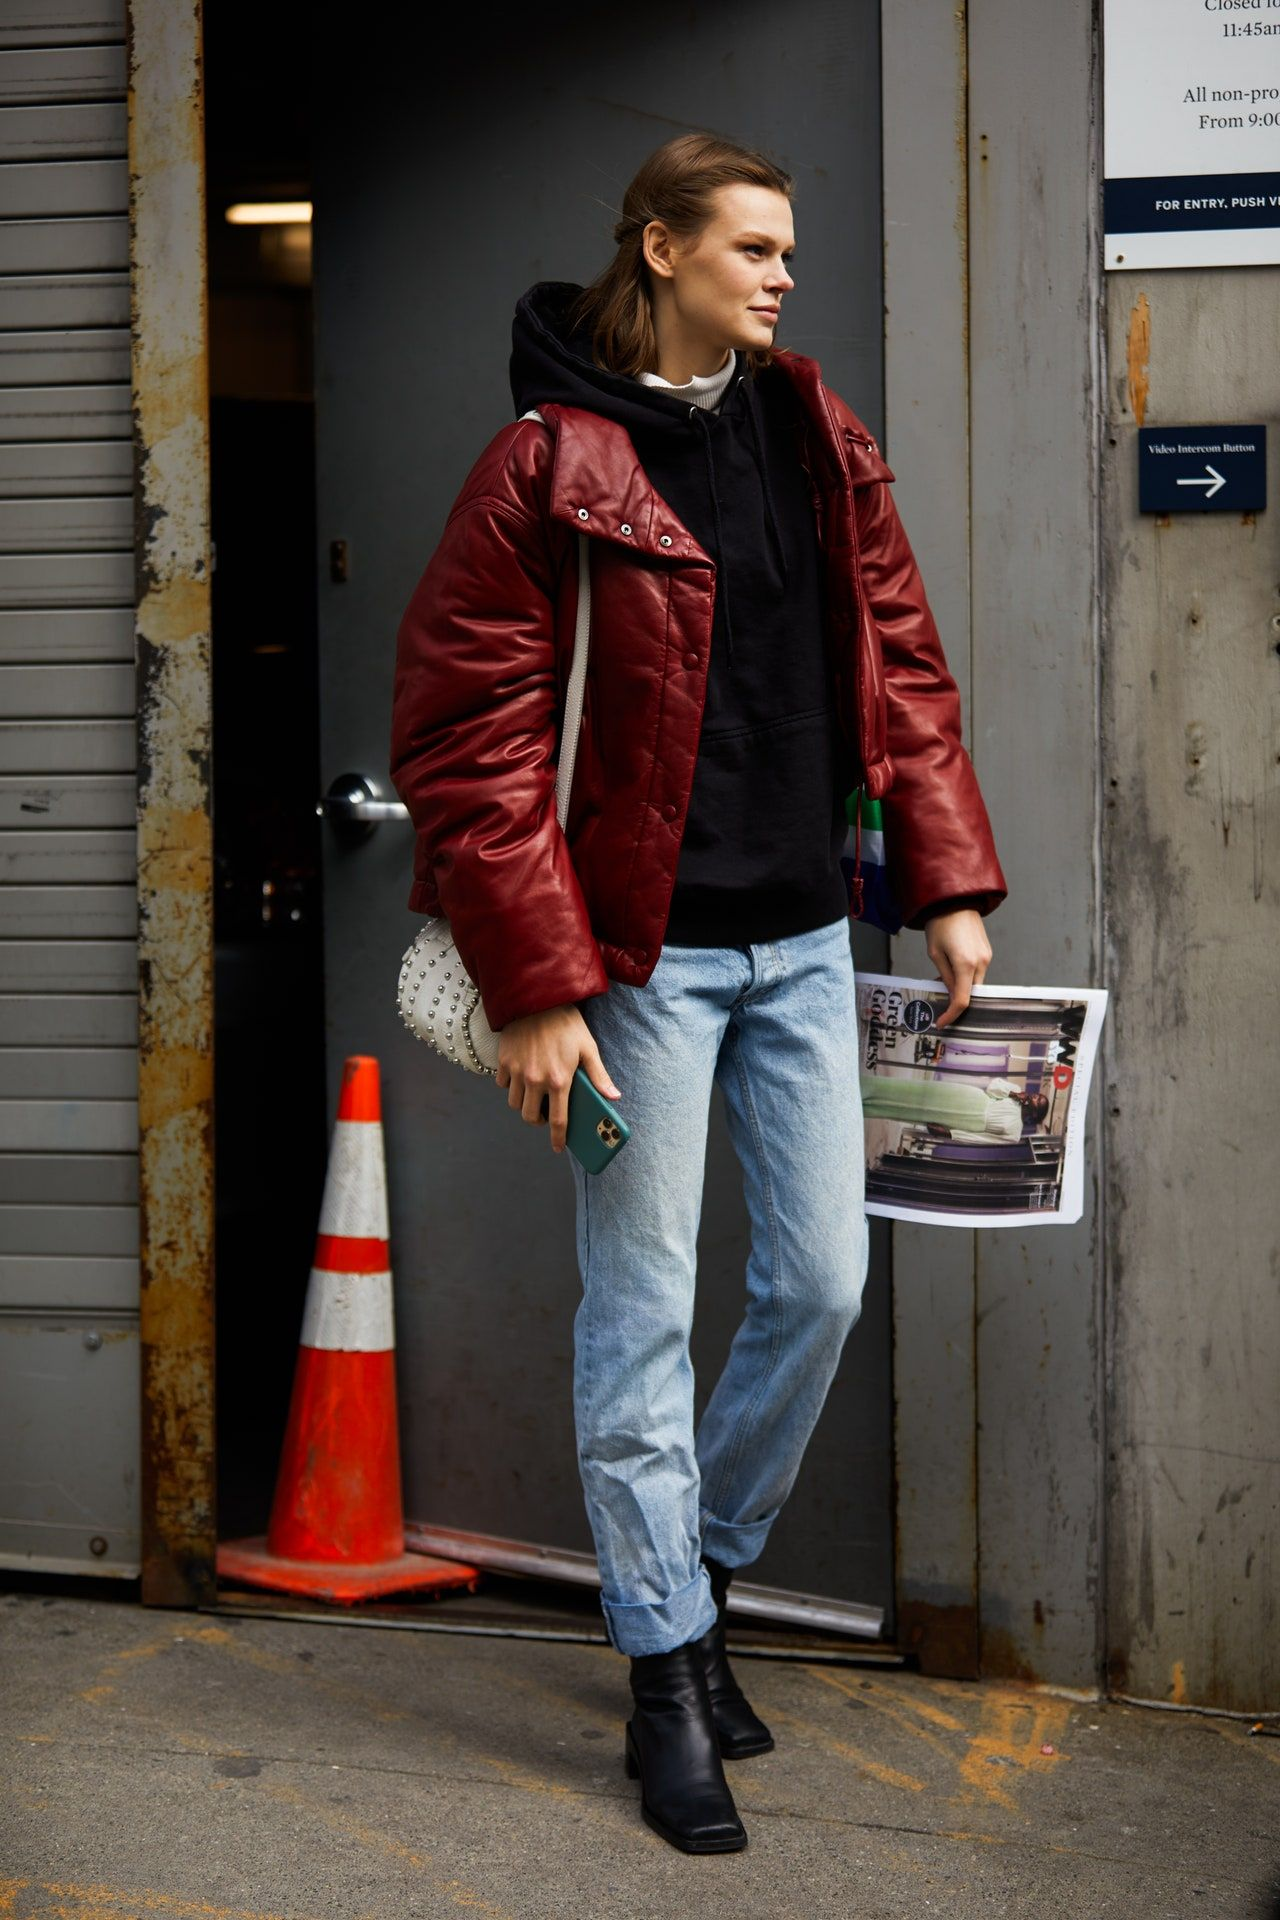 Epingle Sur Fw 20 21 New York Street Style From Vfr